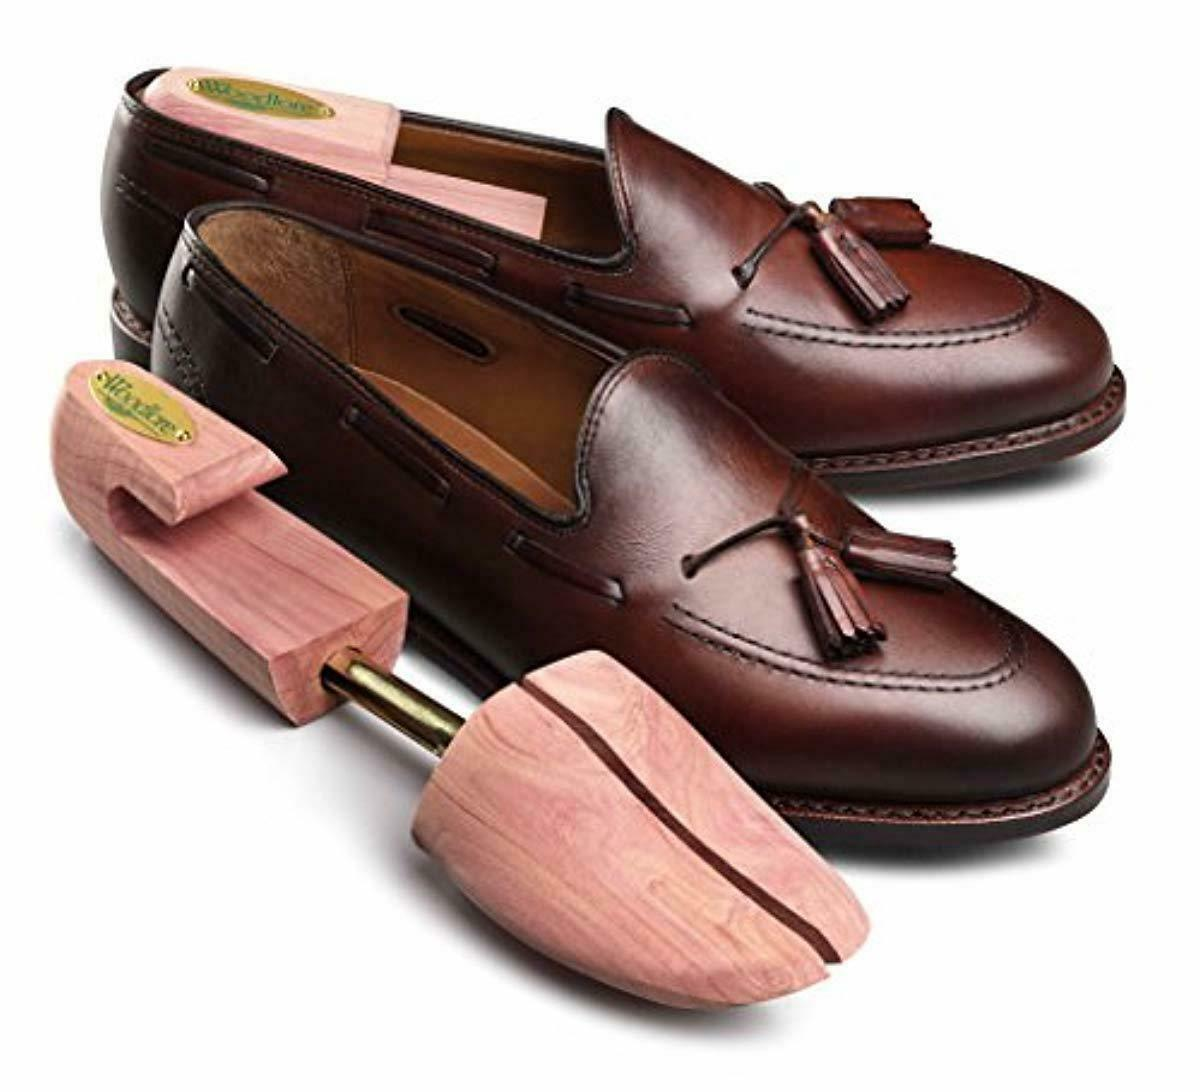 Aromatic Men's Shoe Tree Stretcher 2-Pack 4pcs Natural Red